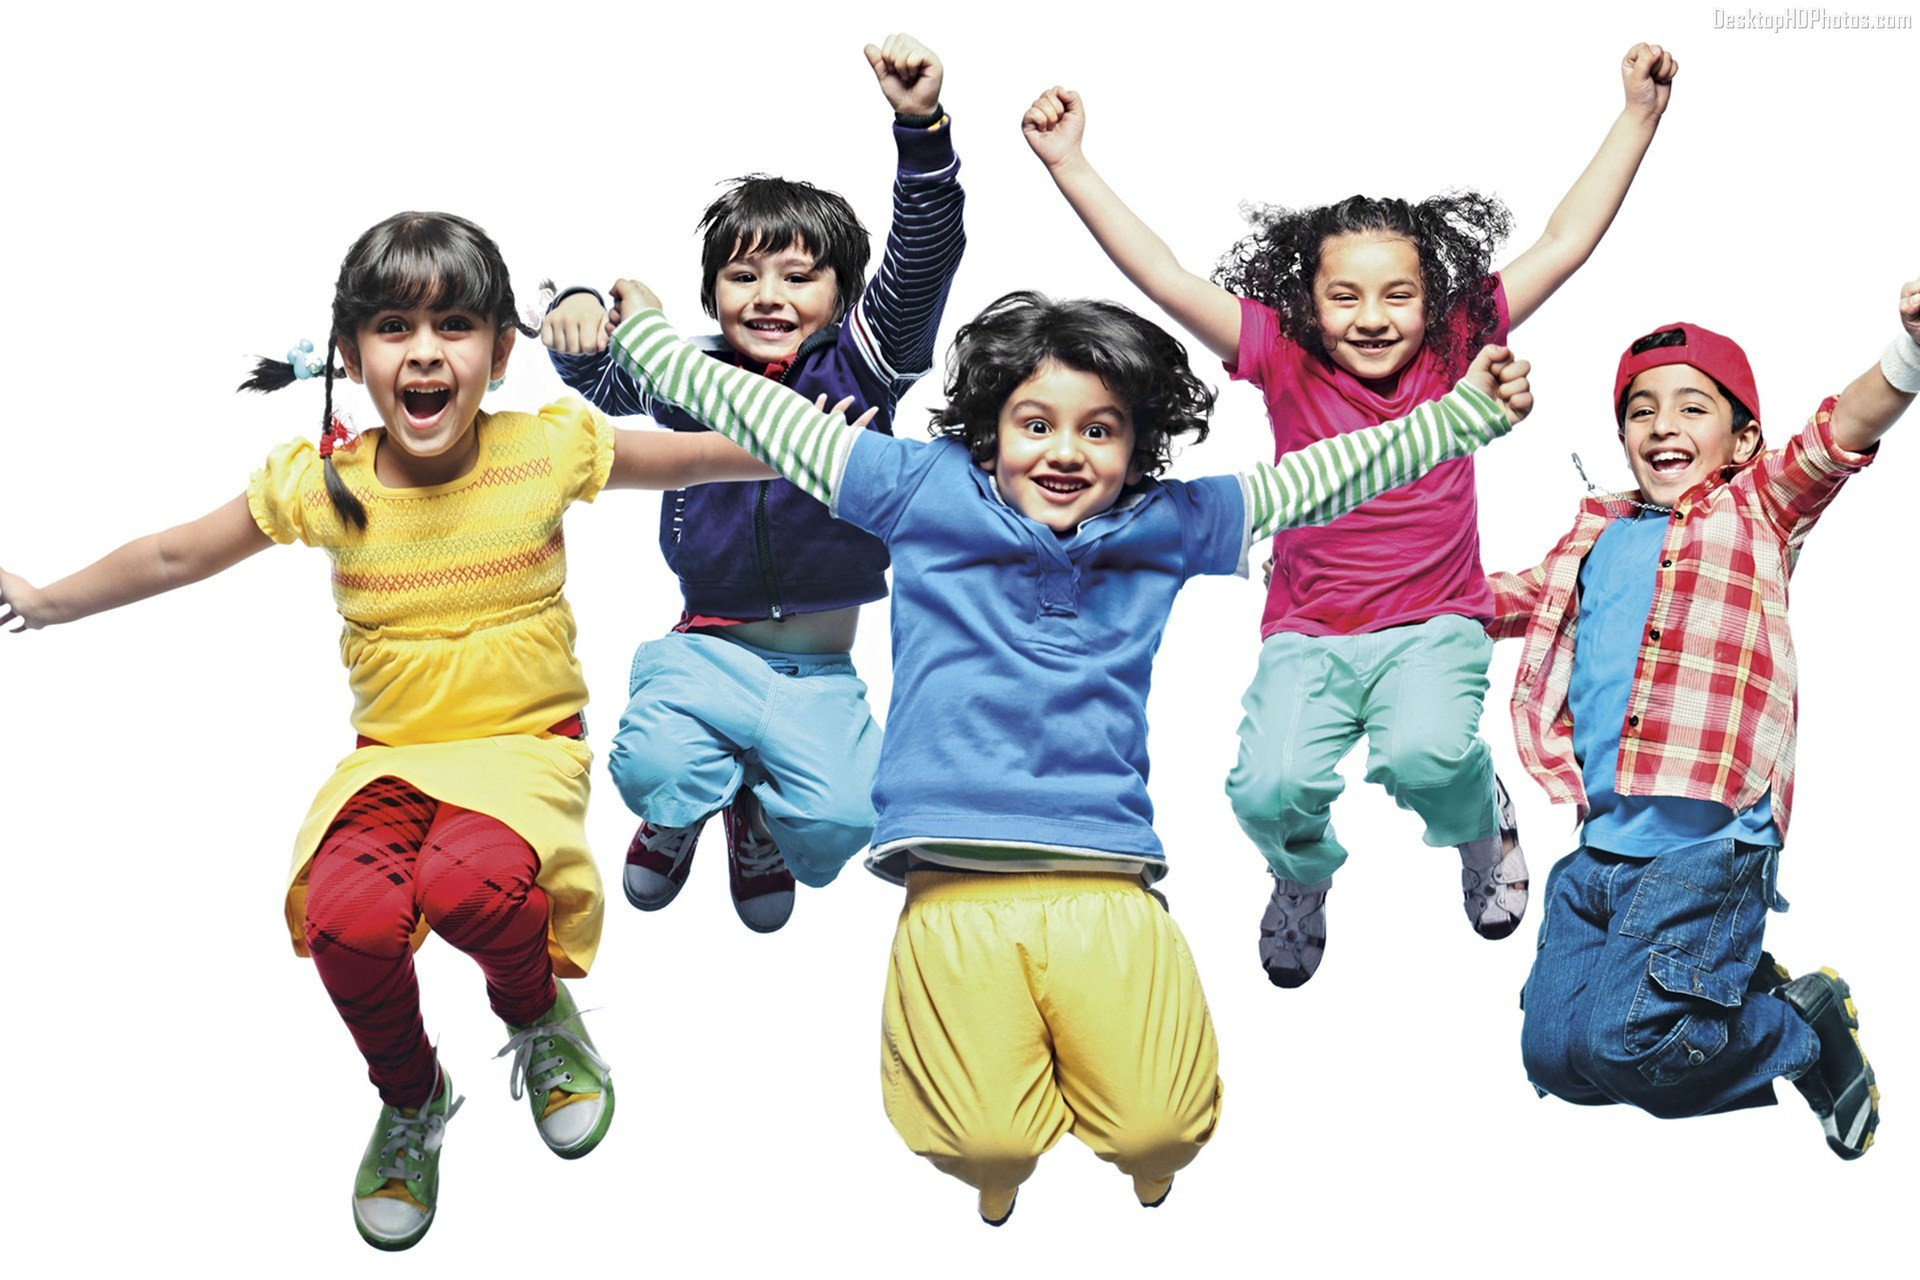 Happy Little Kids Jumping And Dancing | Free Images at ...